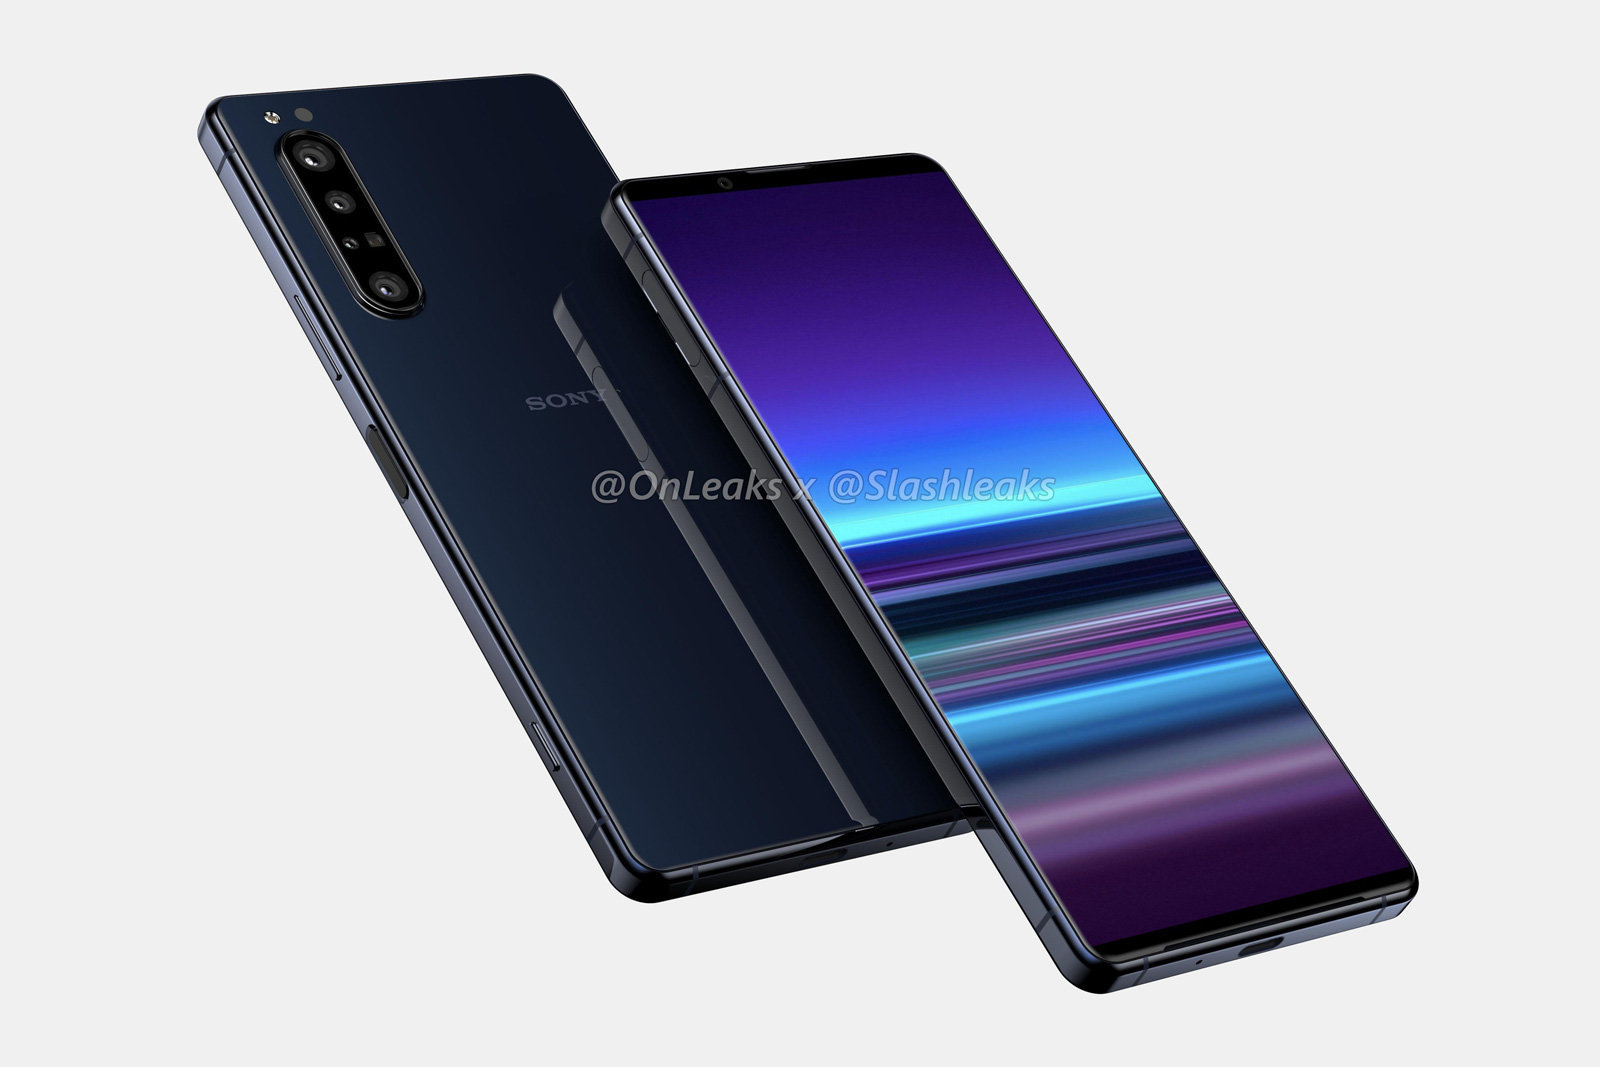 Sony Xperia 1.1 camera specs surfaced ahead of MWC launch